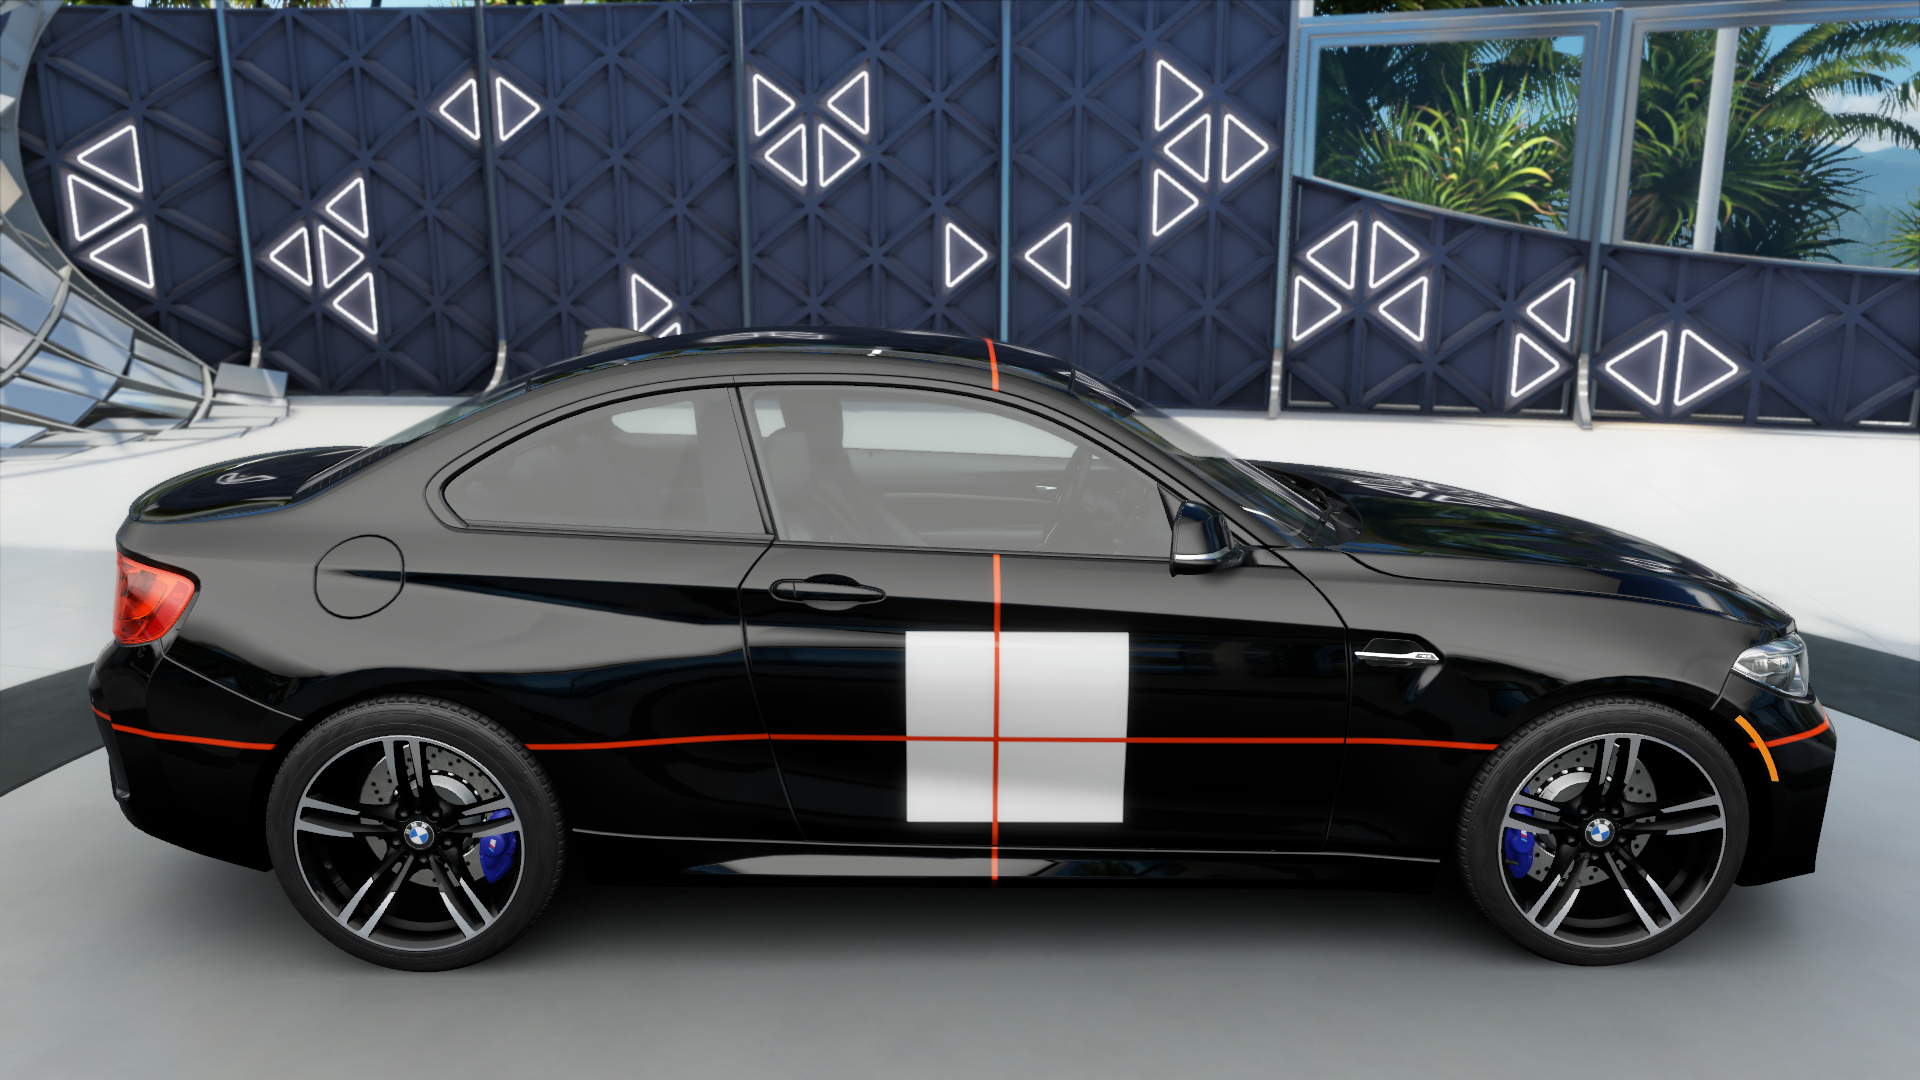 Help Needed Mirroring Decals New Issue At The Bottom Paint Booth Forza Motorsport Forums